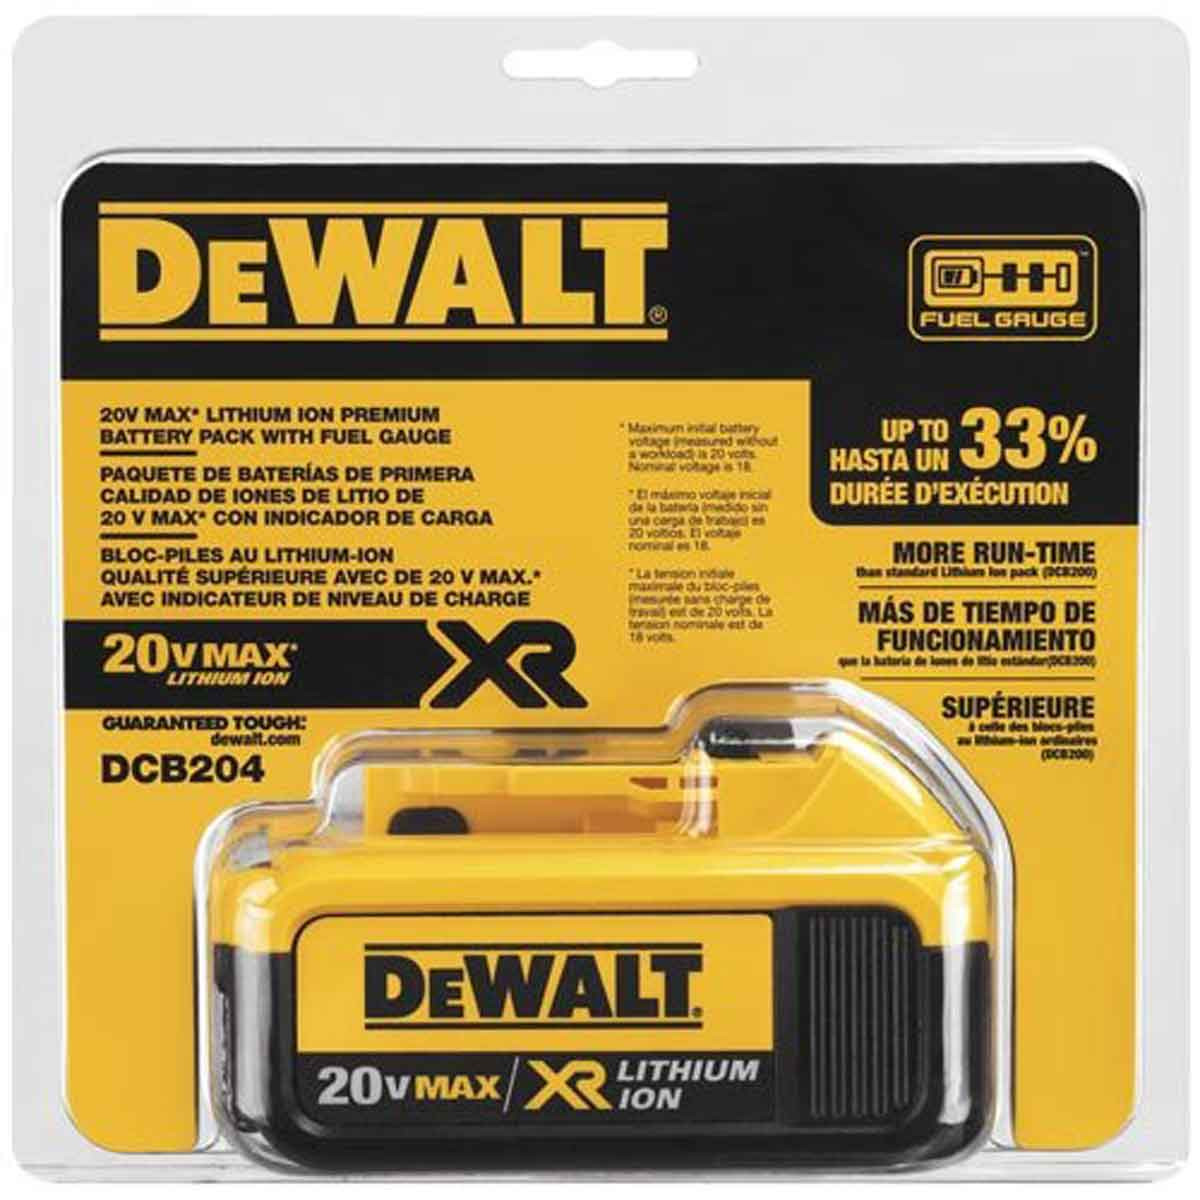 DCB204 20V Dewalt Battery Pack